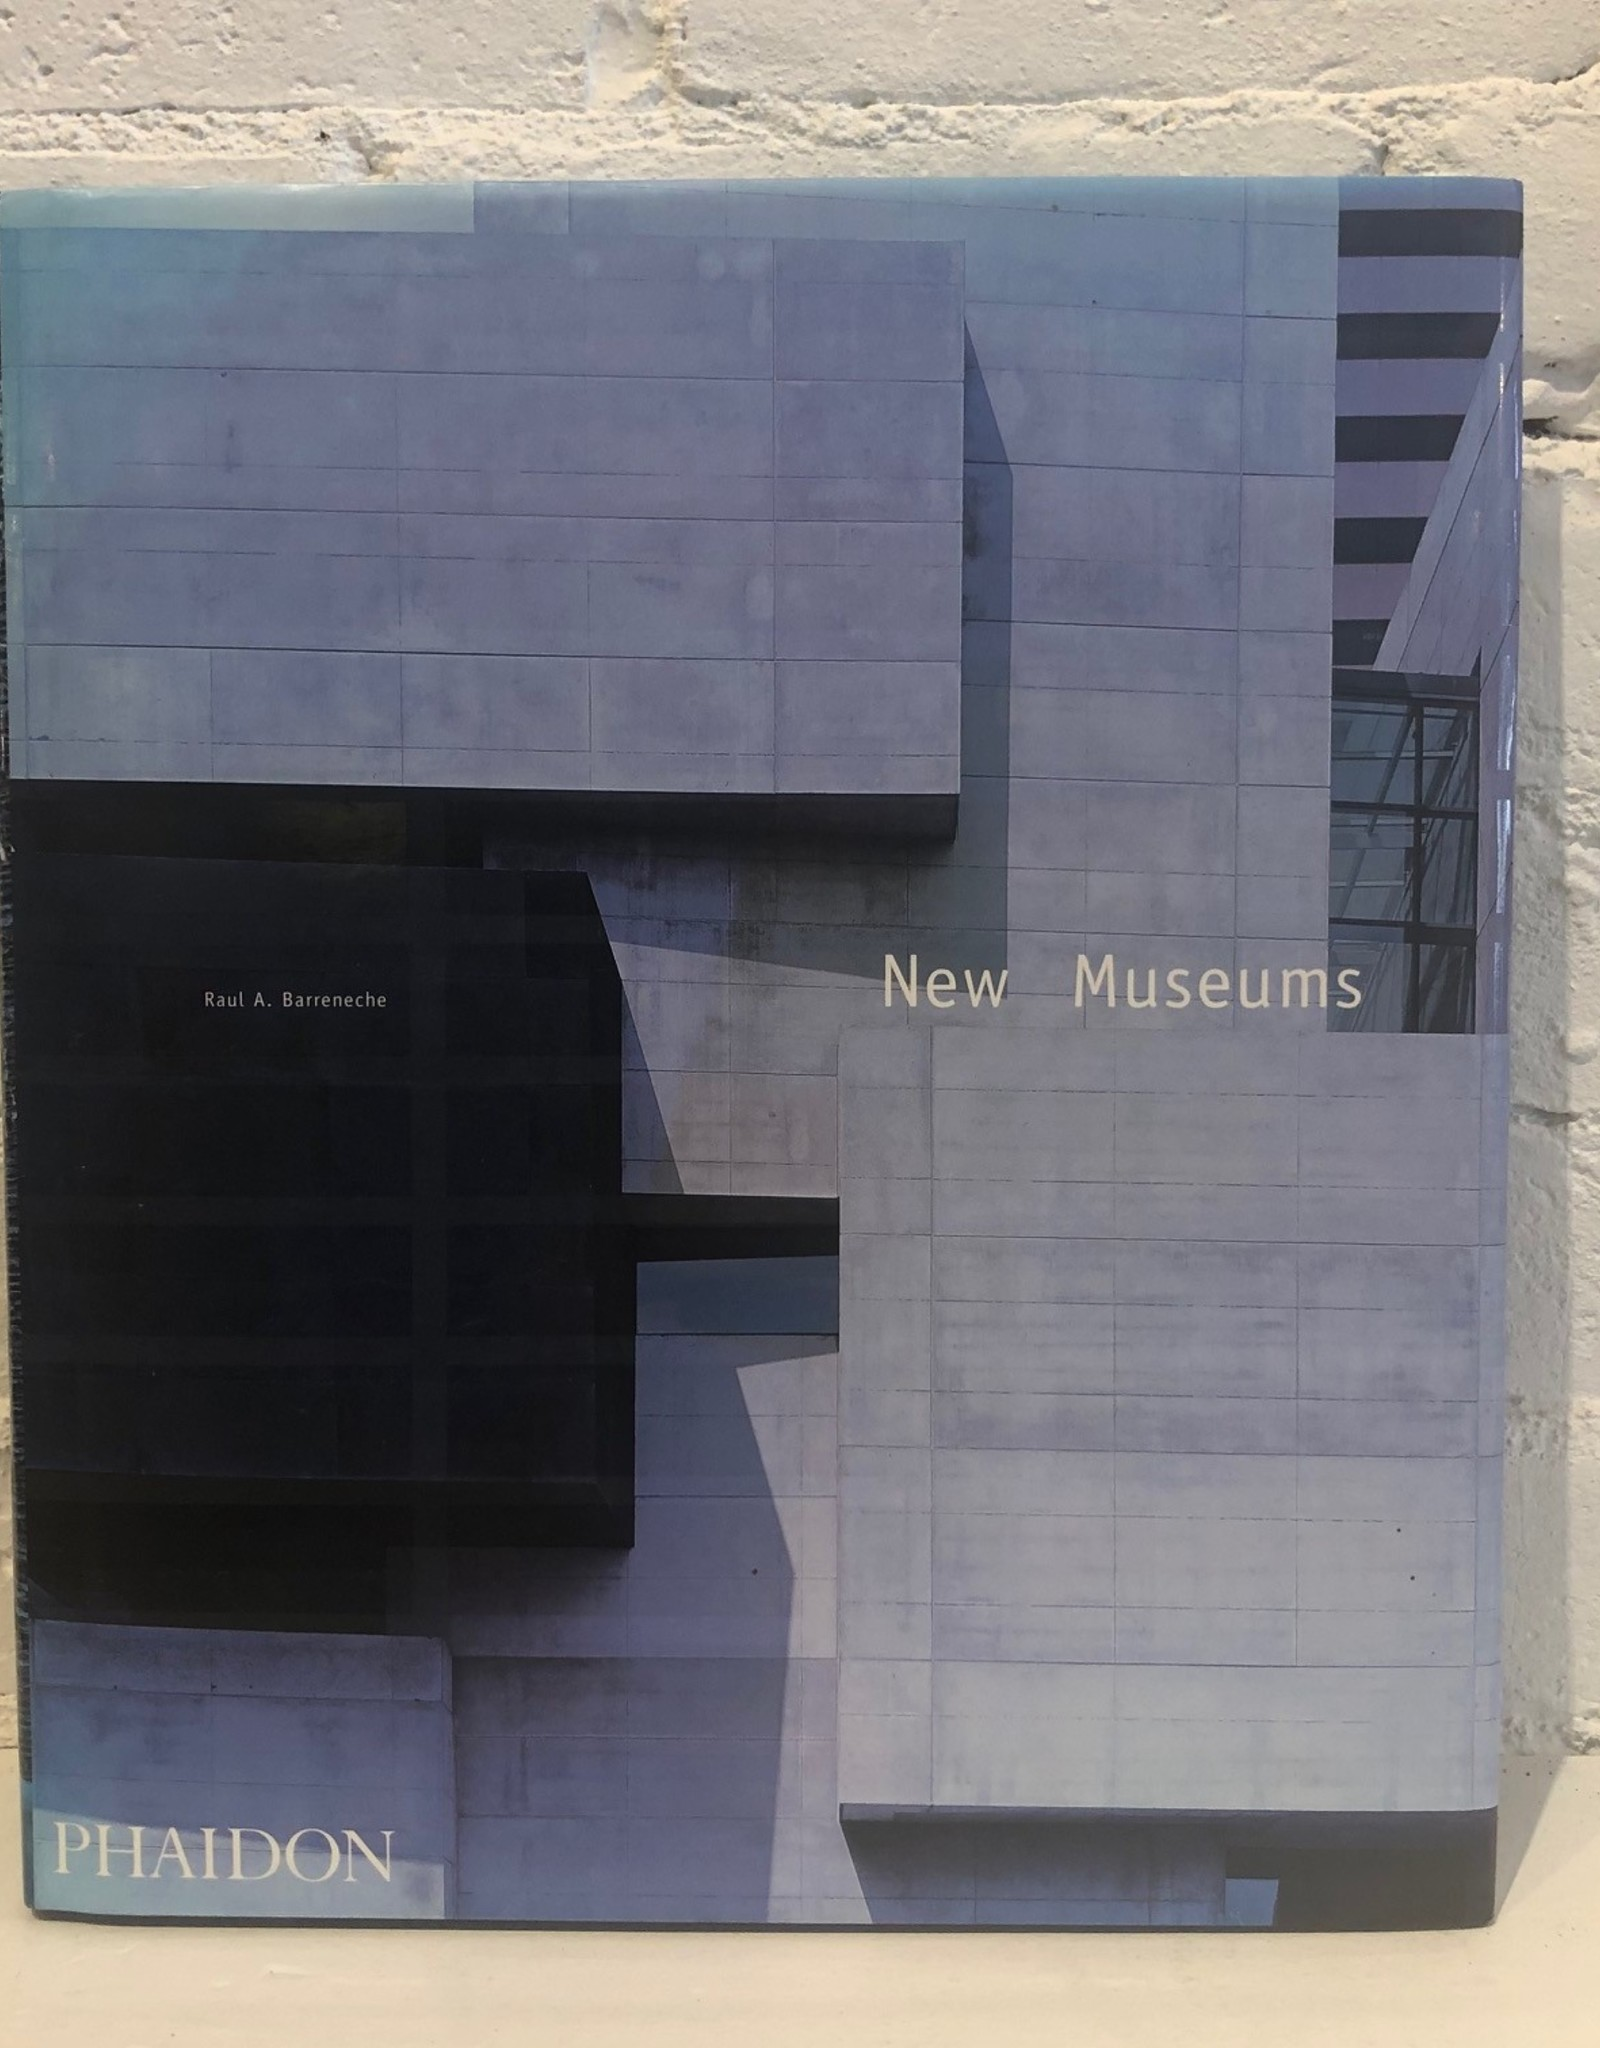 New Museums by Raul A. Barreneche